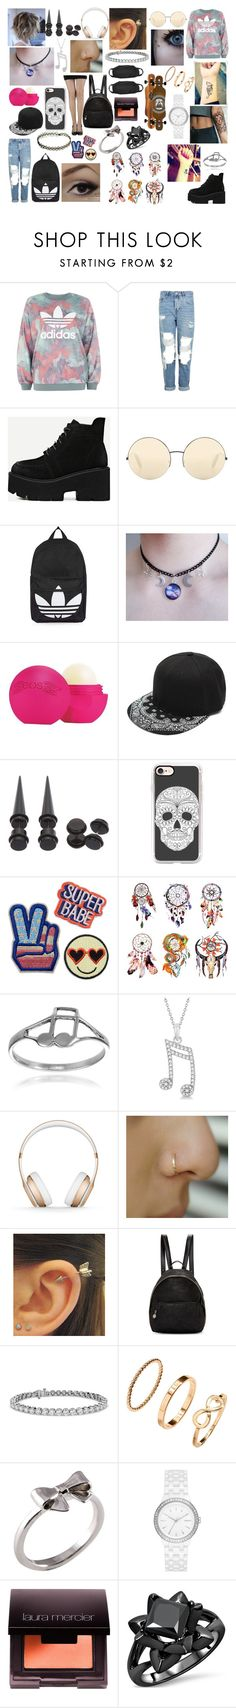 """""""#70"""" by spider-1505 on Polyvore featuring adidas, Topshop, Victoria Beckham, Casetify, CO, Journee Collection, Allurez, Beats by Dr. Dre, STELLA McCARTNEY and Blue Nile"""